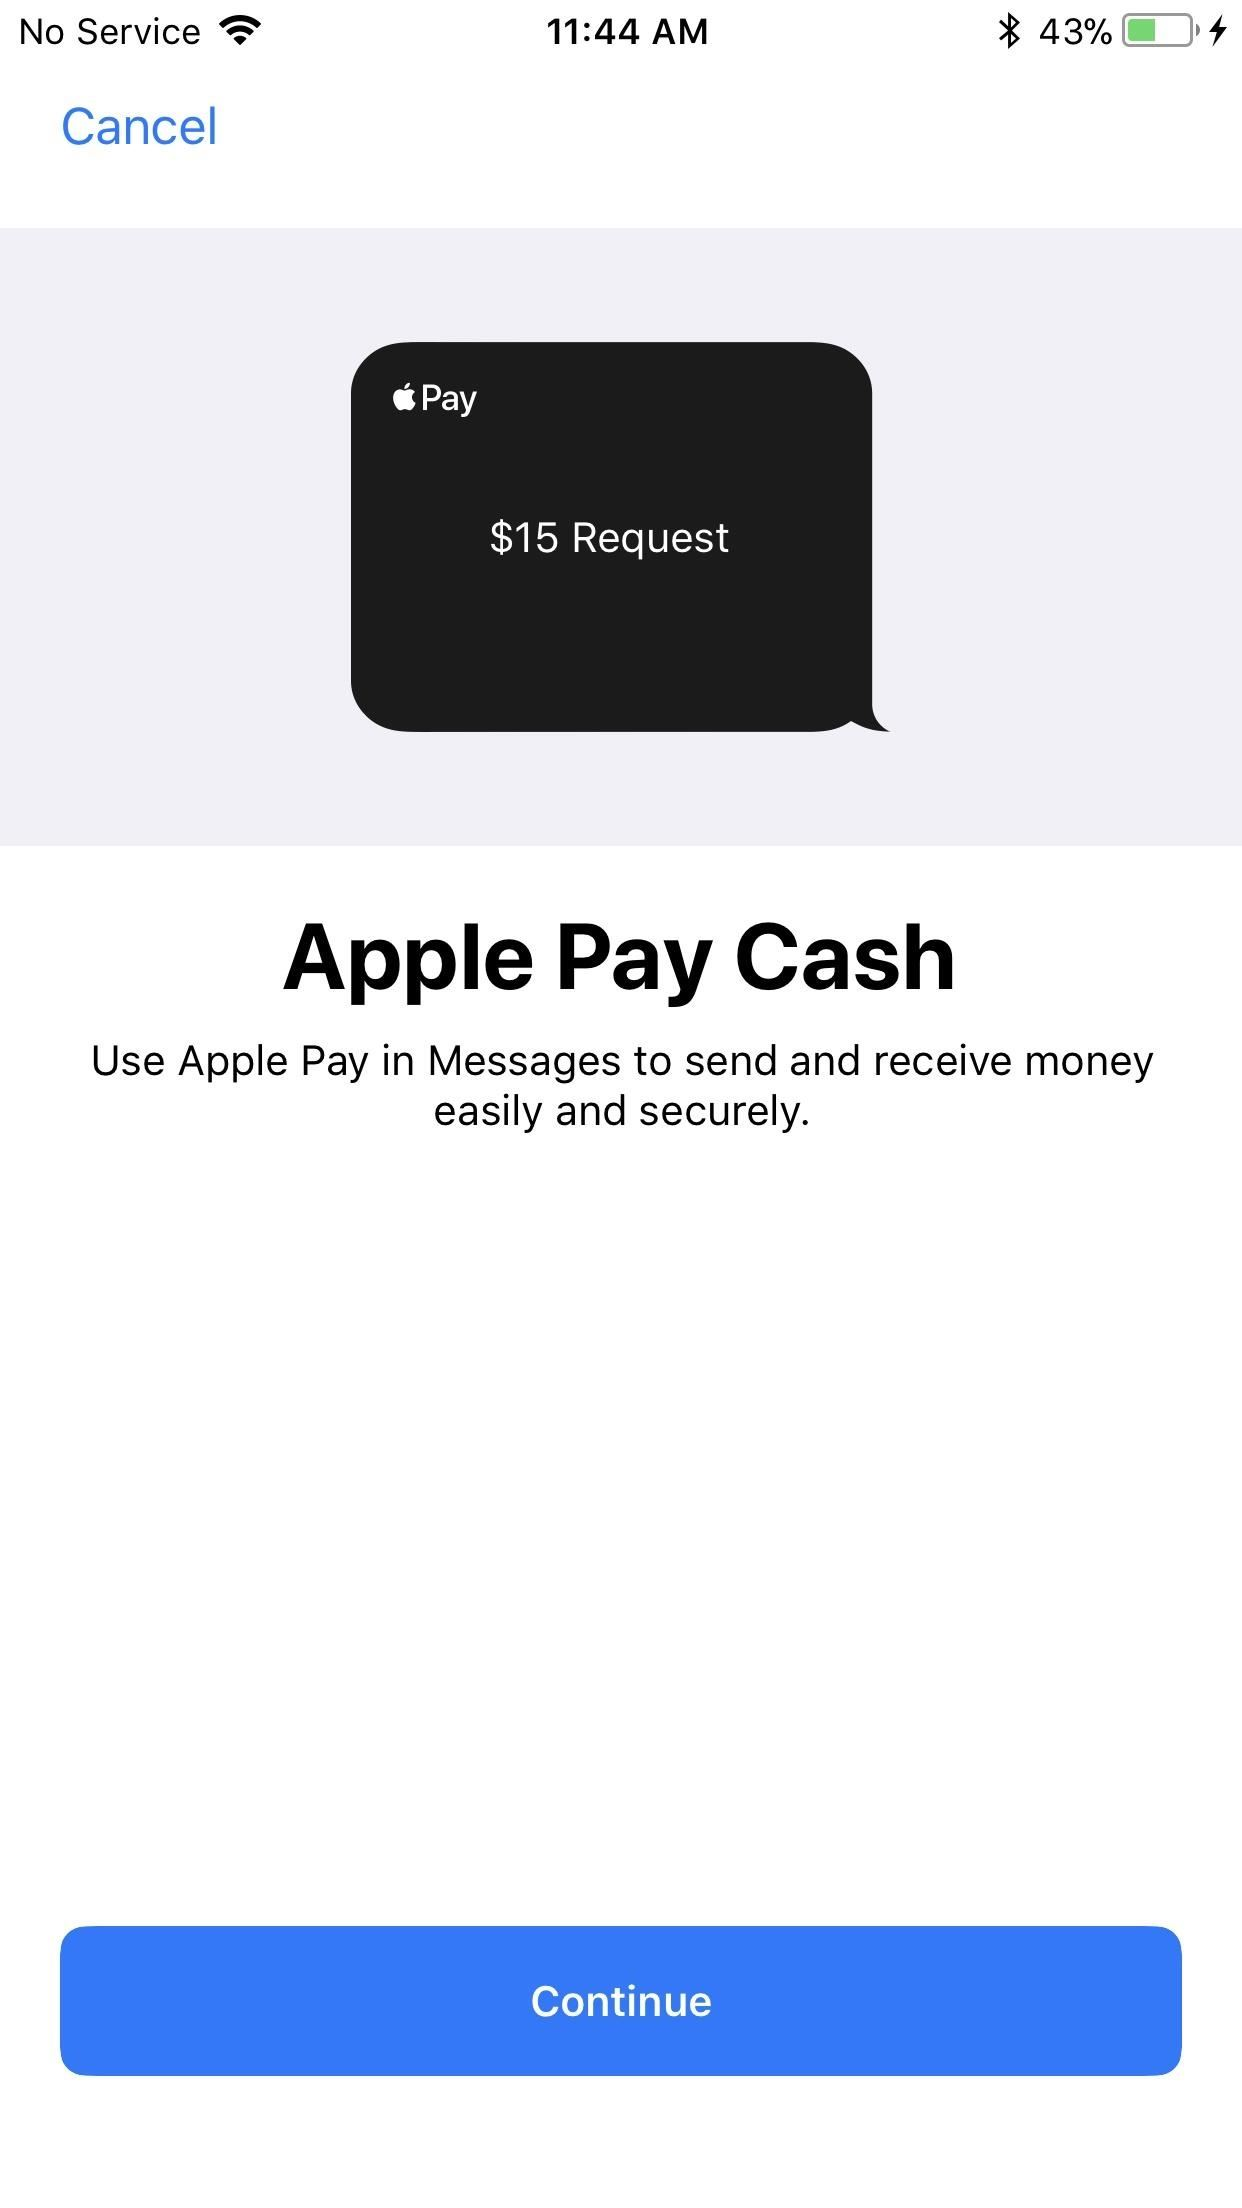 How to Send & Receive Apple Pay Cash via Messages on Your iPhone